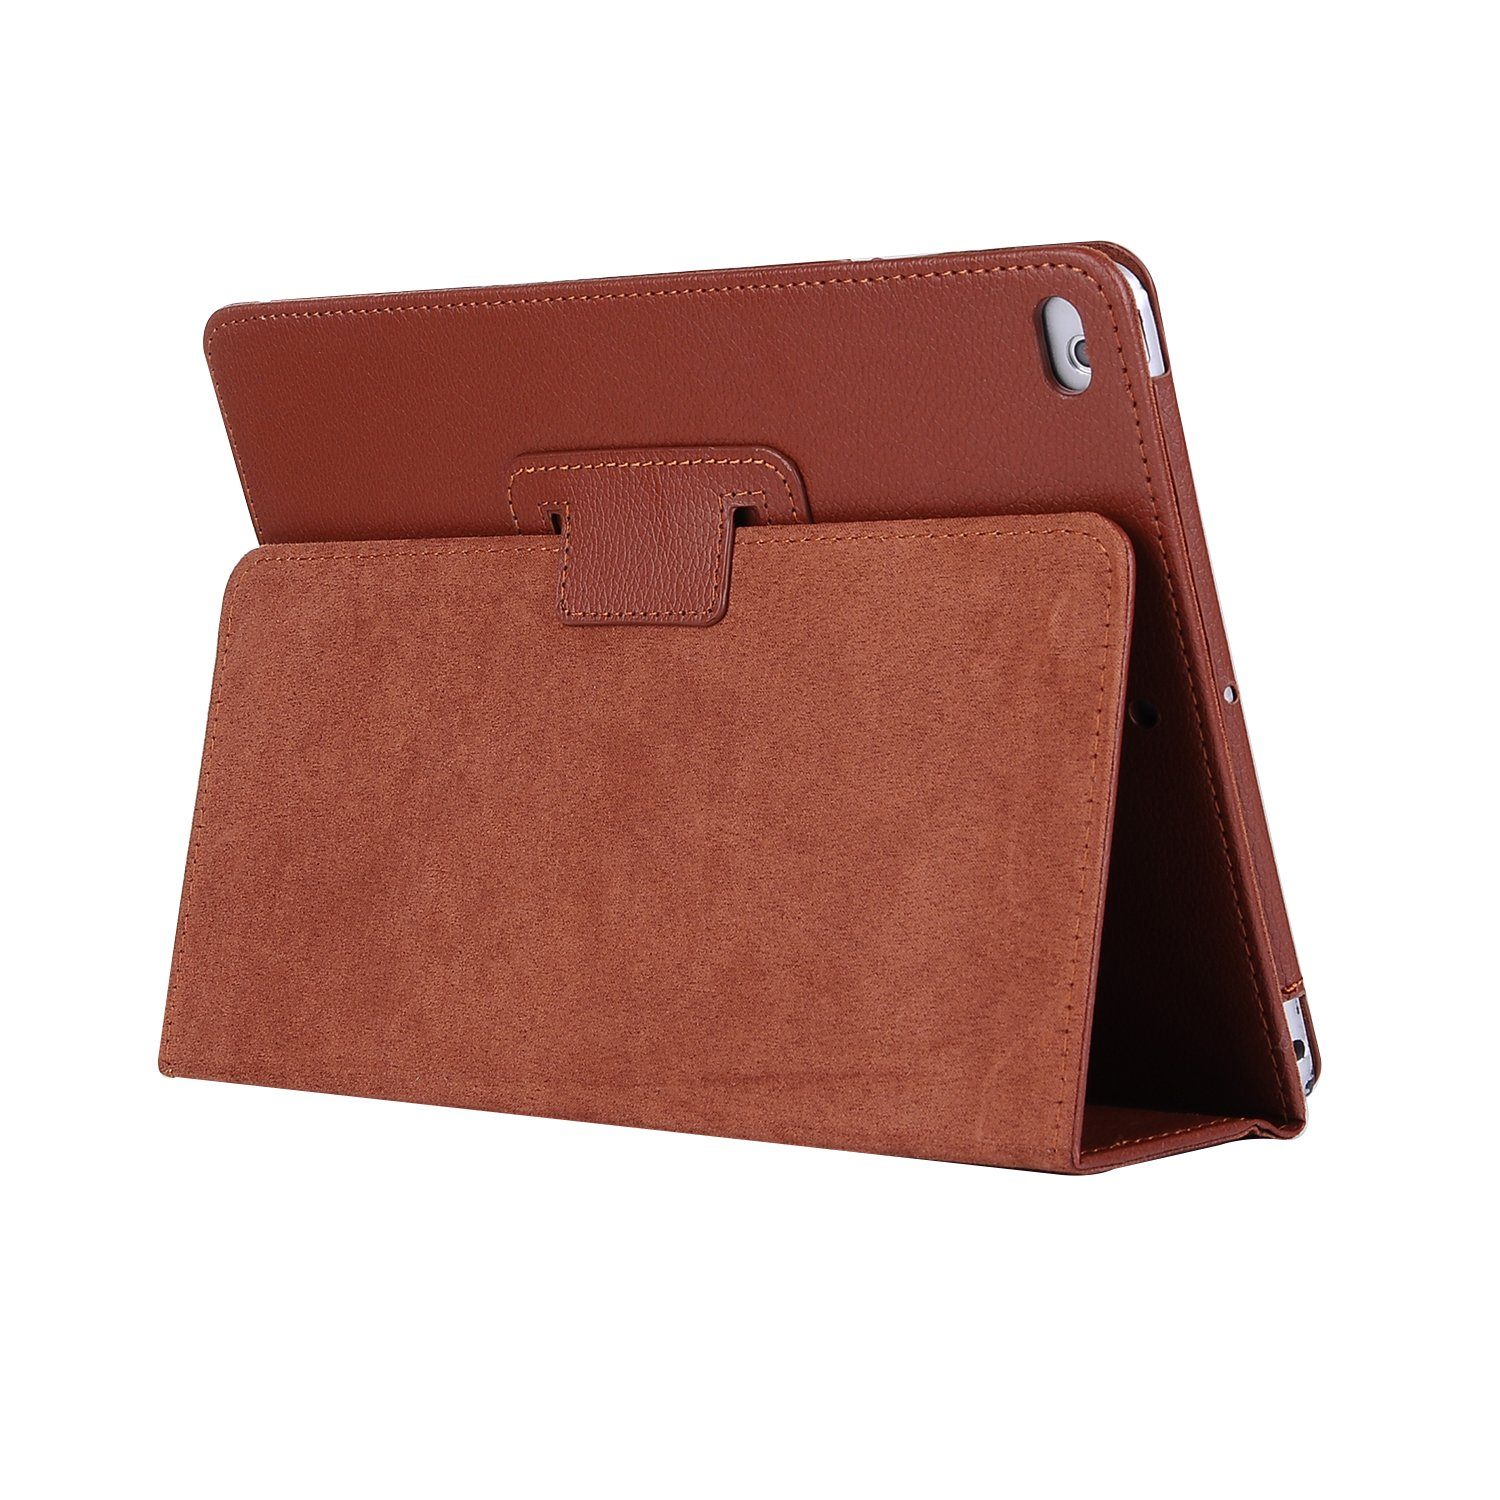 for iPad 10.2 brown Brown For Apple iPad 10 2 Case 2019 A2197 A2200 A2198 A2232 Foilo Stand PU Leather Cover